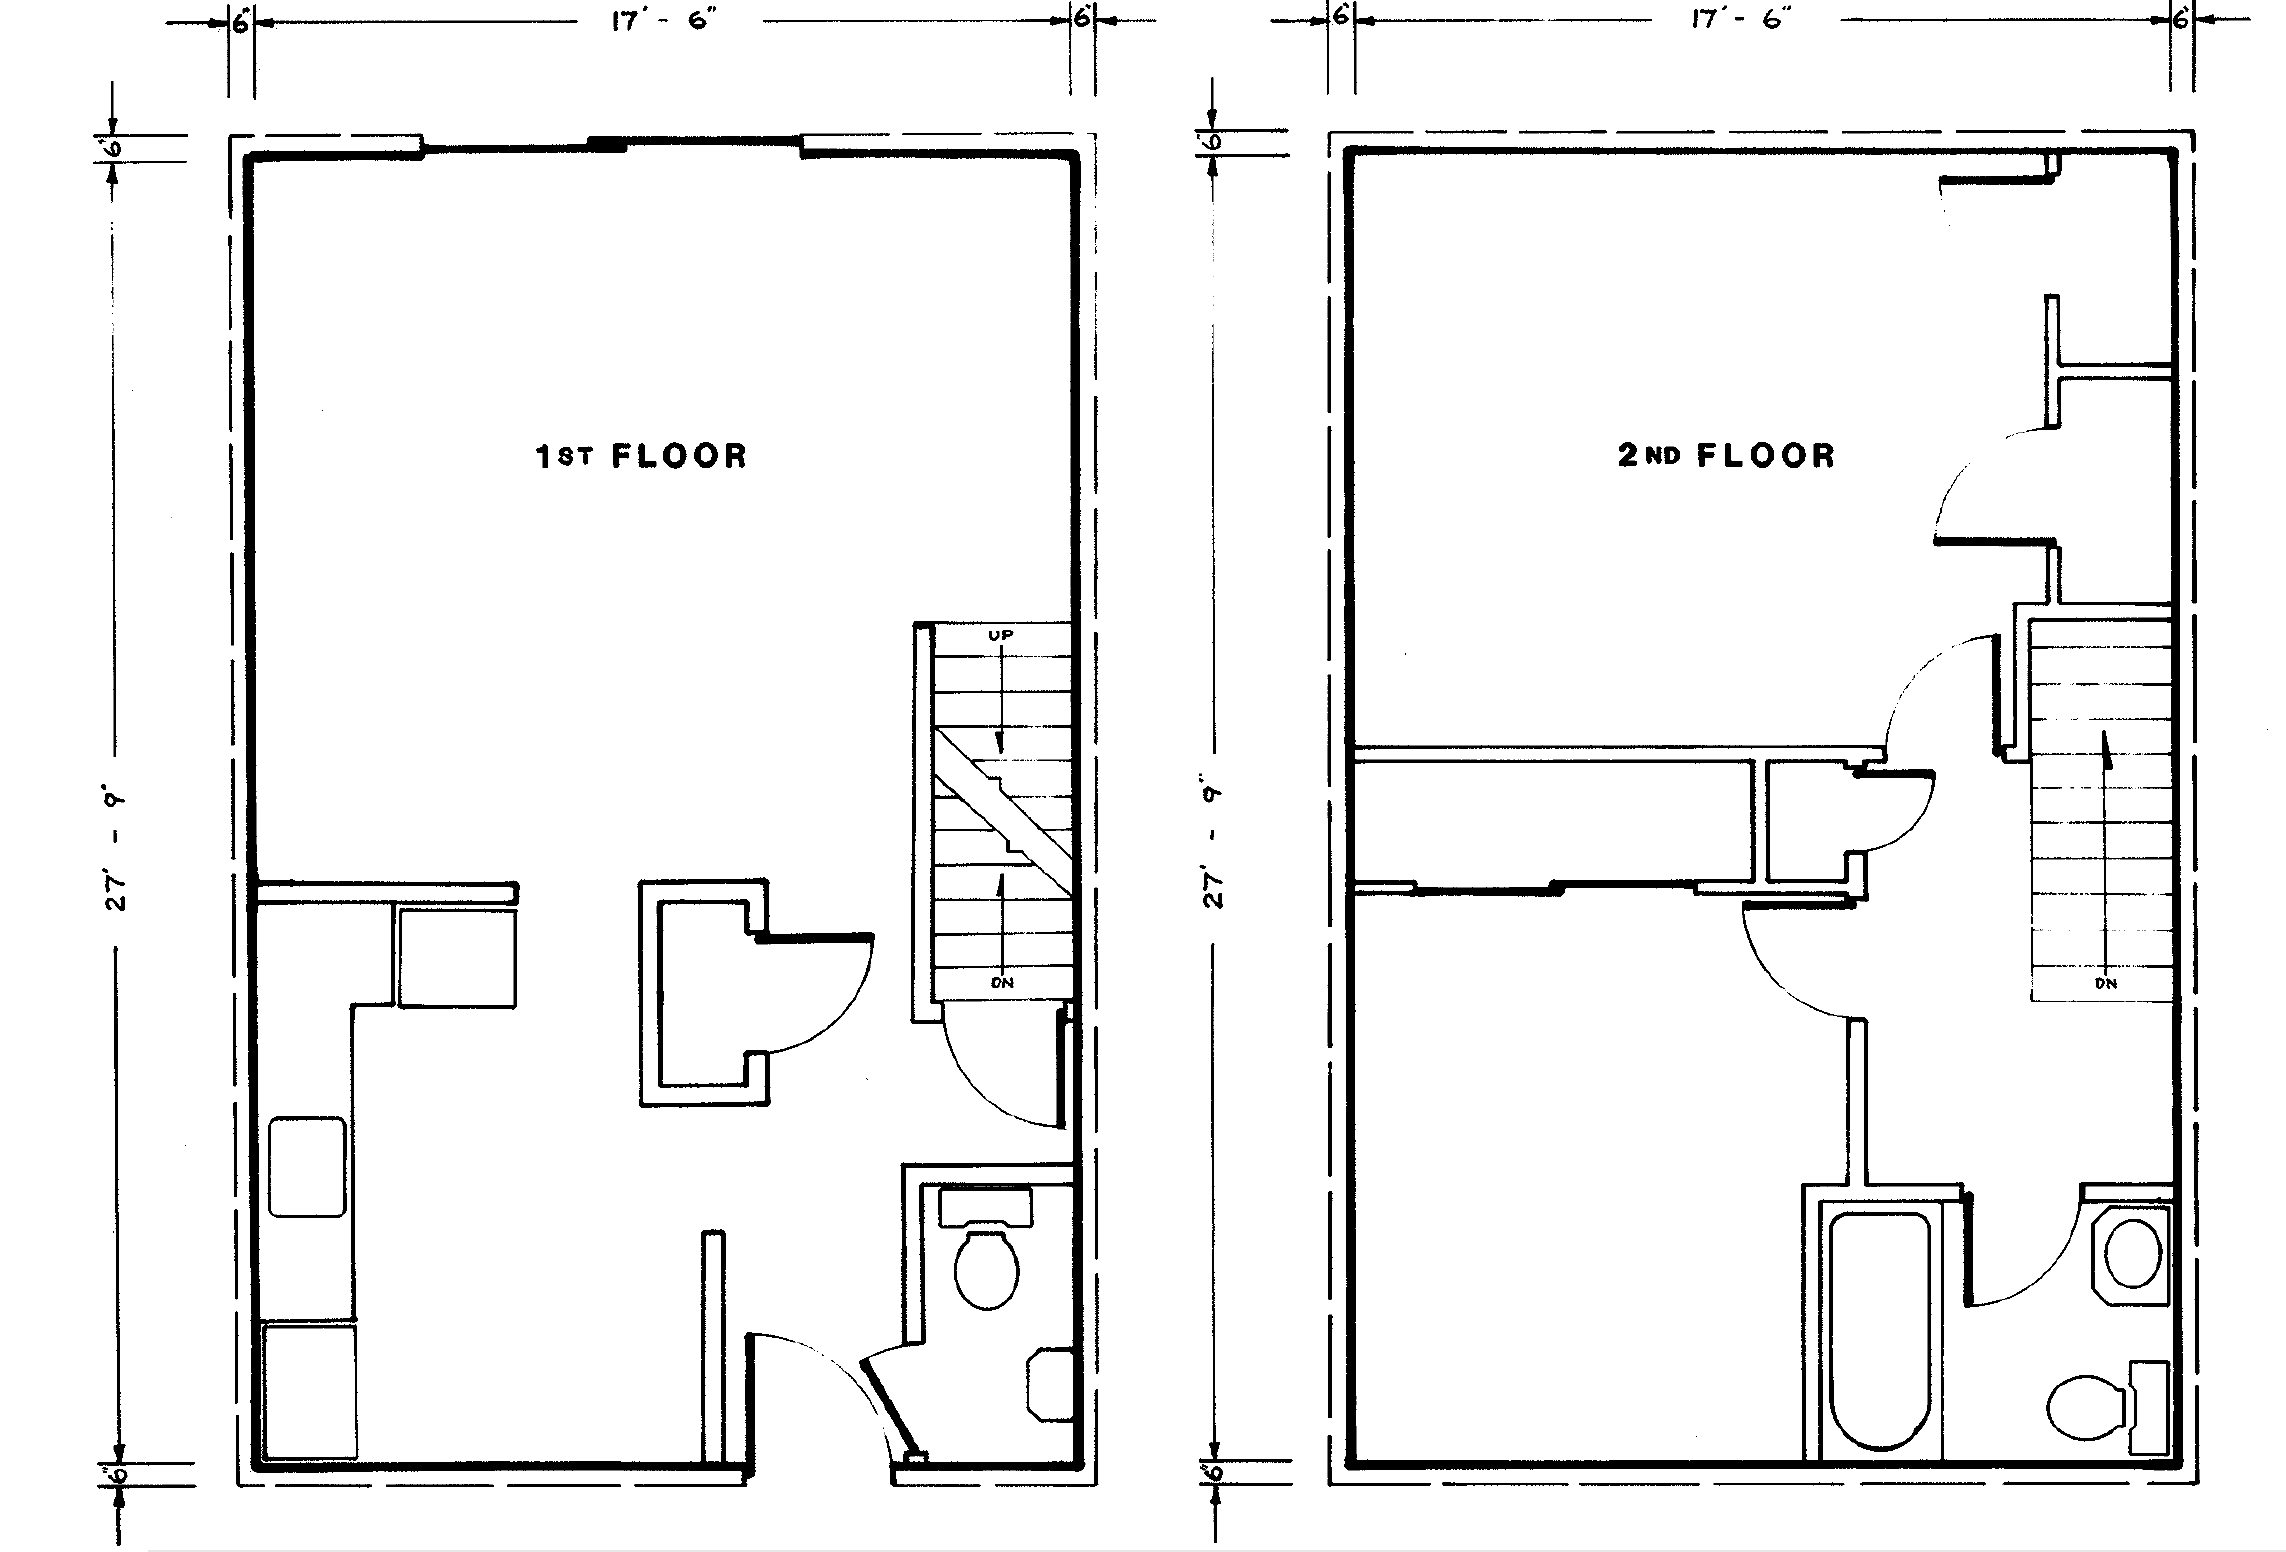 2 Bedroom Floor Plan Aster Fields